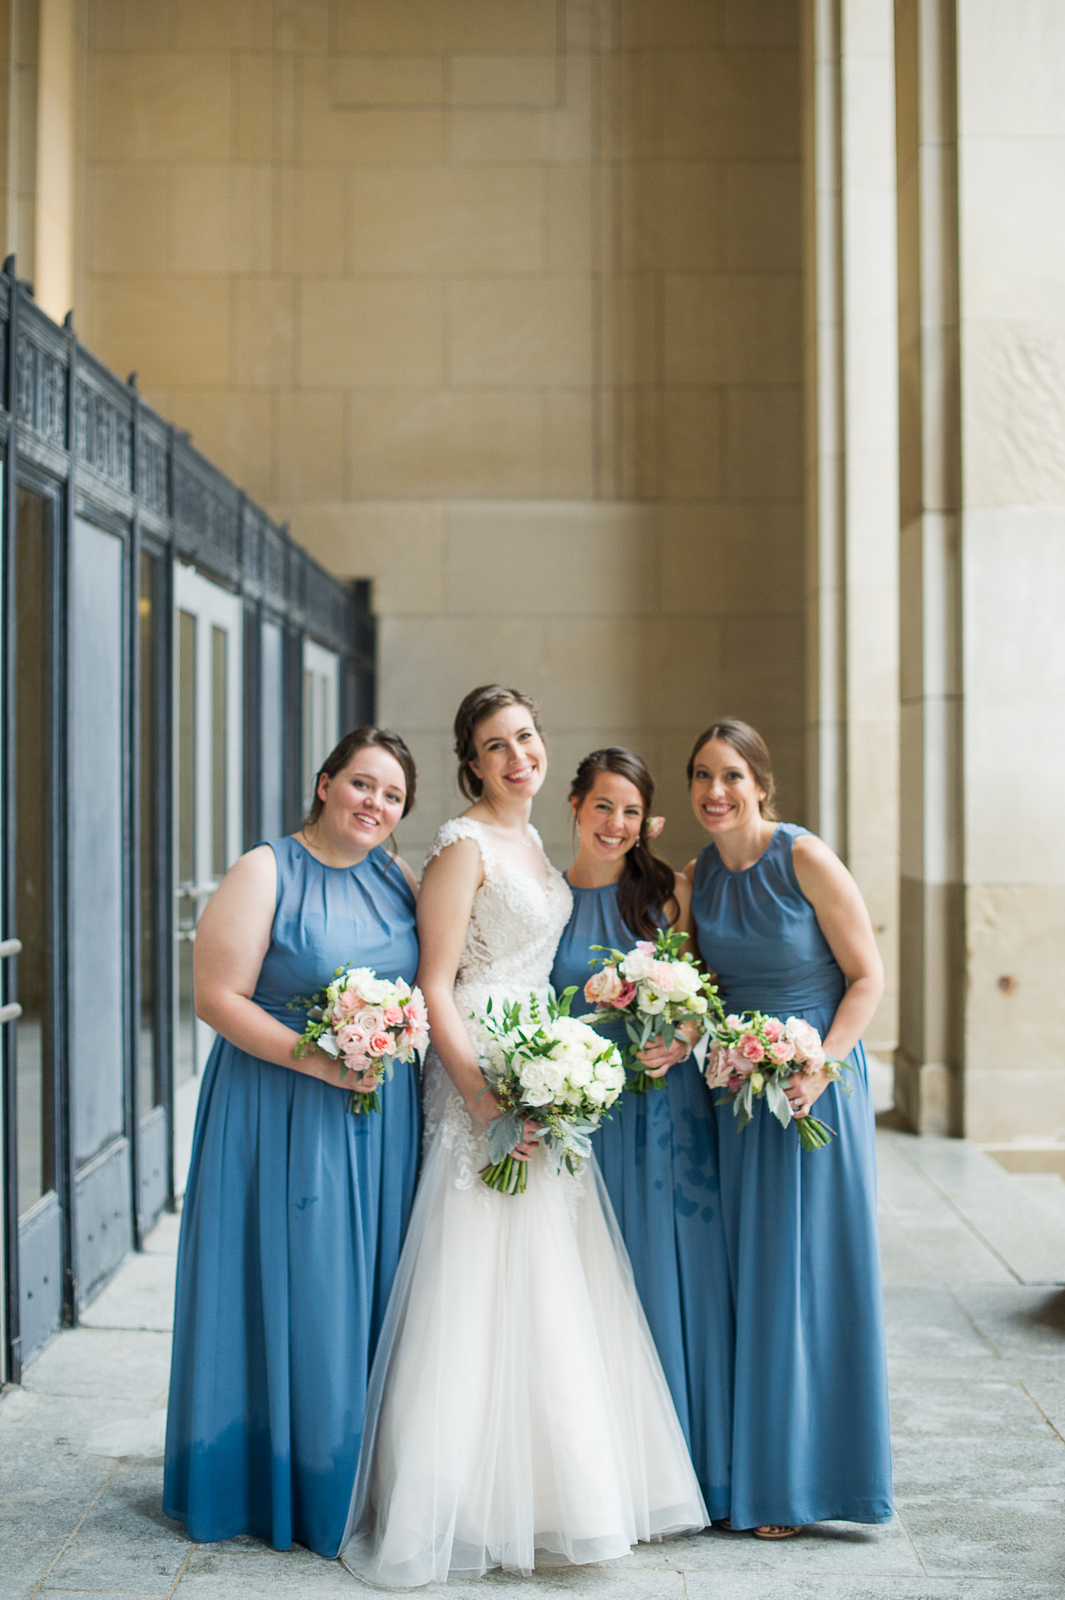 JS Weddings and Events, a Grand Rapids Wedding Planner and Floral Designer. Downtown Grand Rapids McKay Ballroom Fall Wedding. A romantic blush and blue palette.